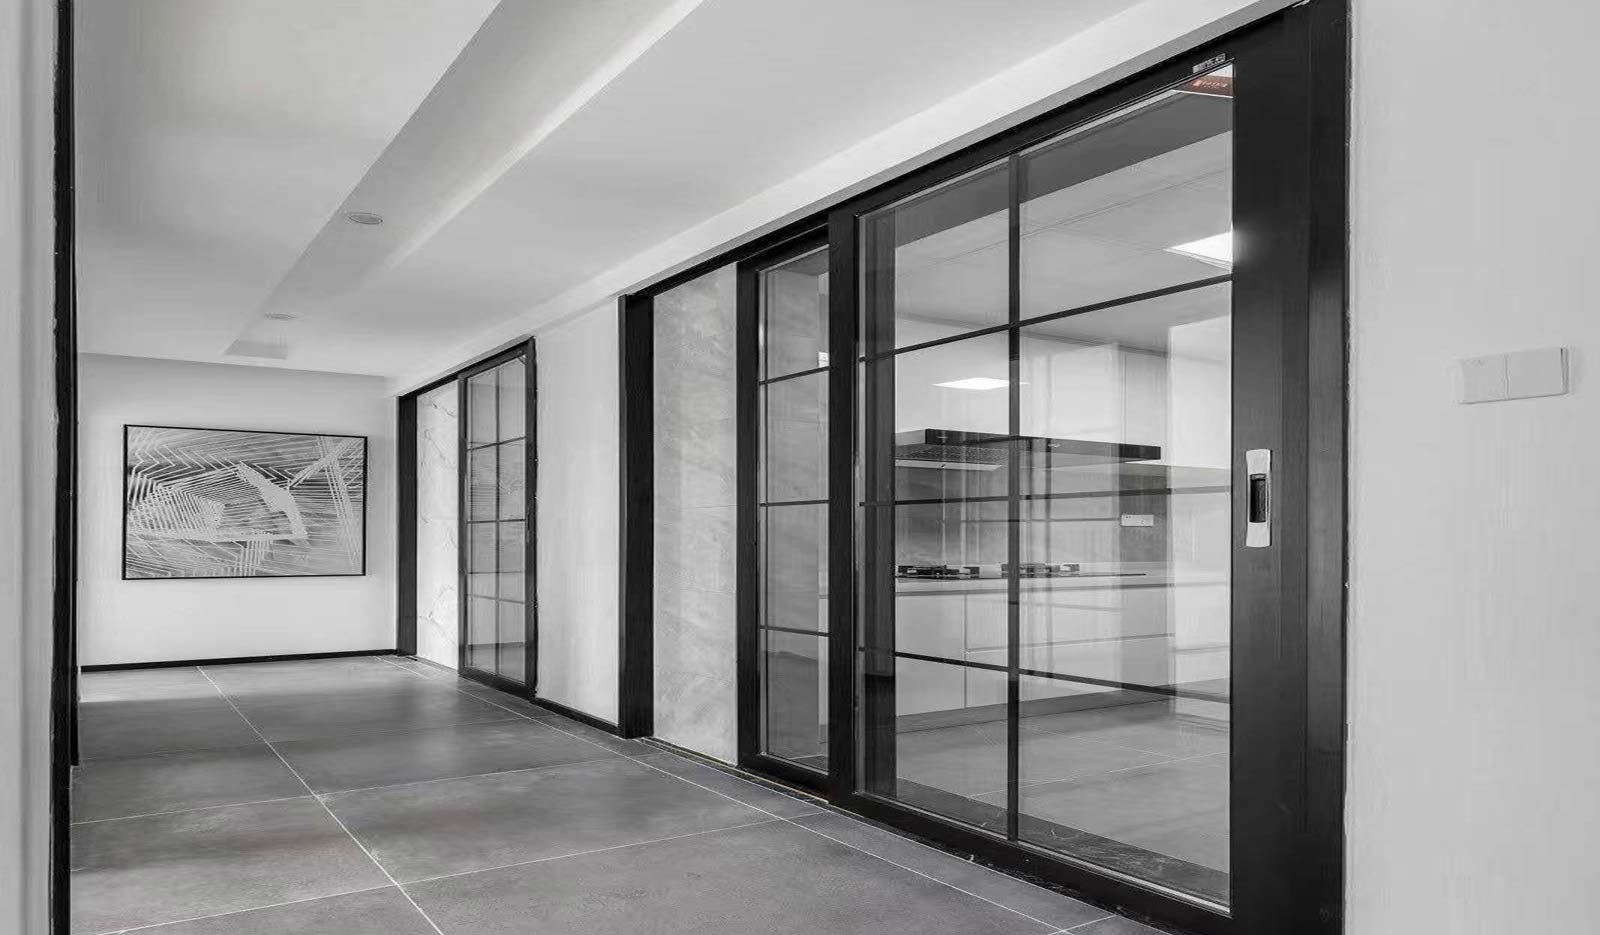 Balcony doors and windows will be more beautiful and practical if matched in this way